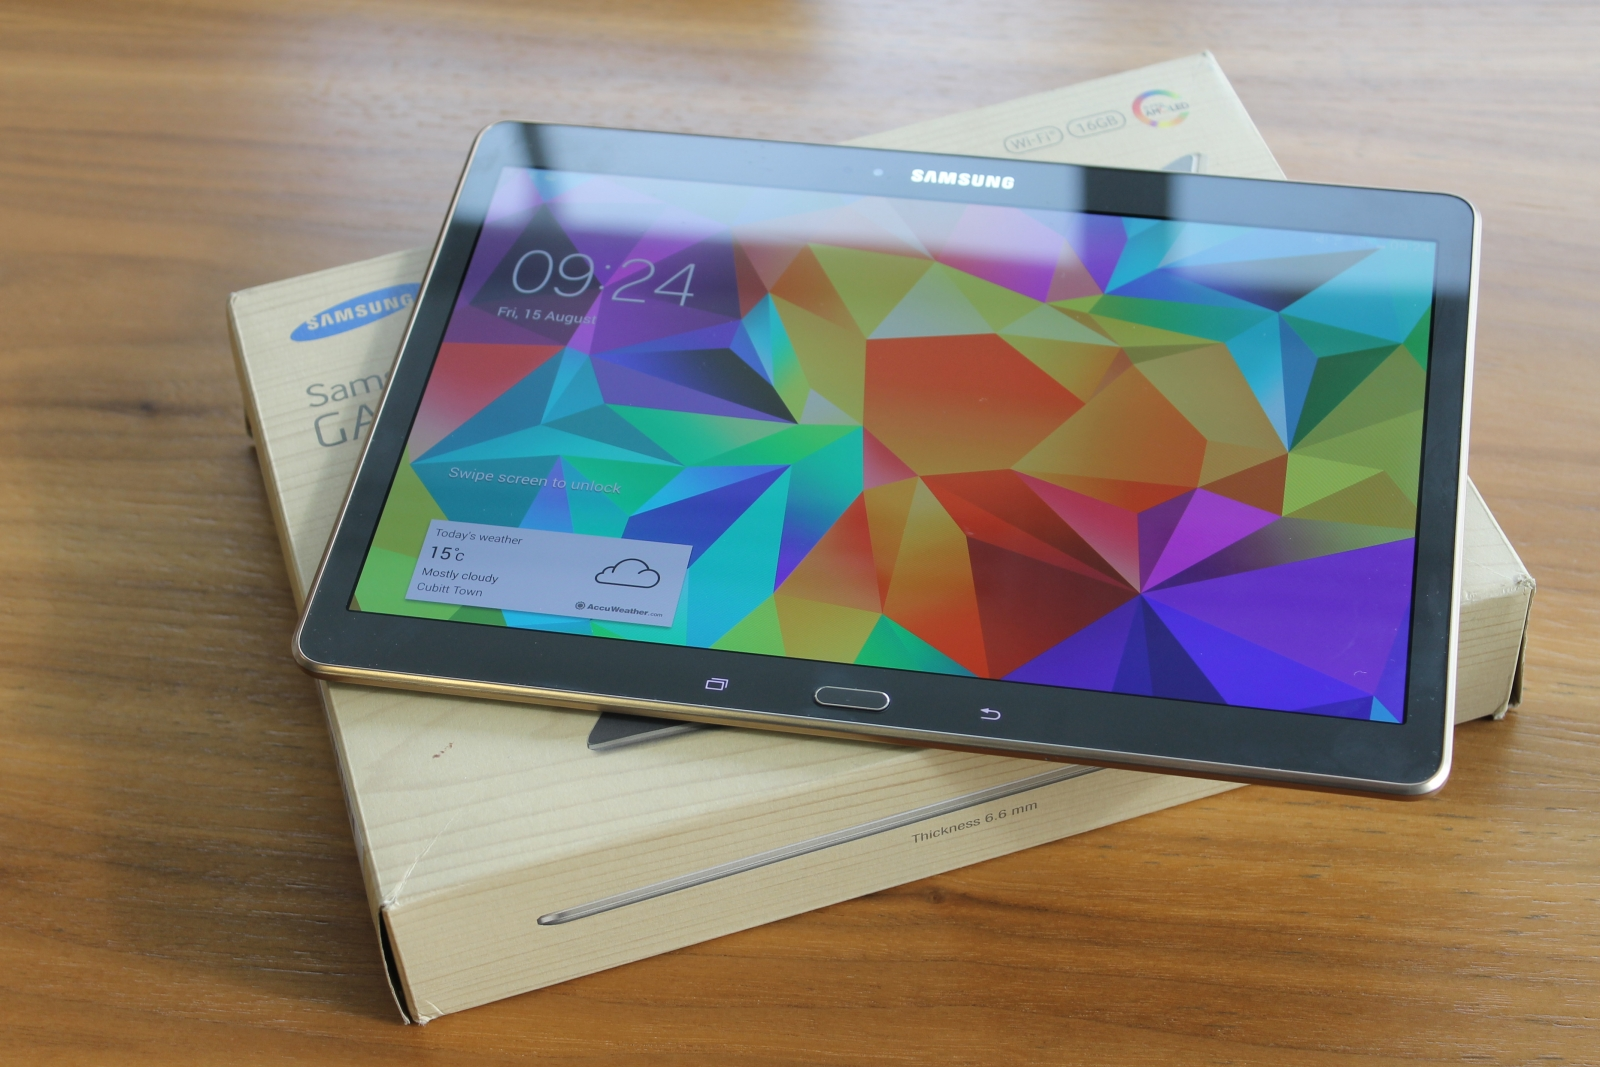 Samsung Galaxy Tab S screen